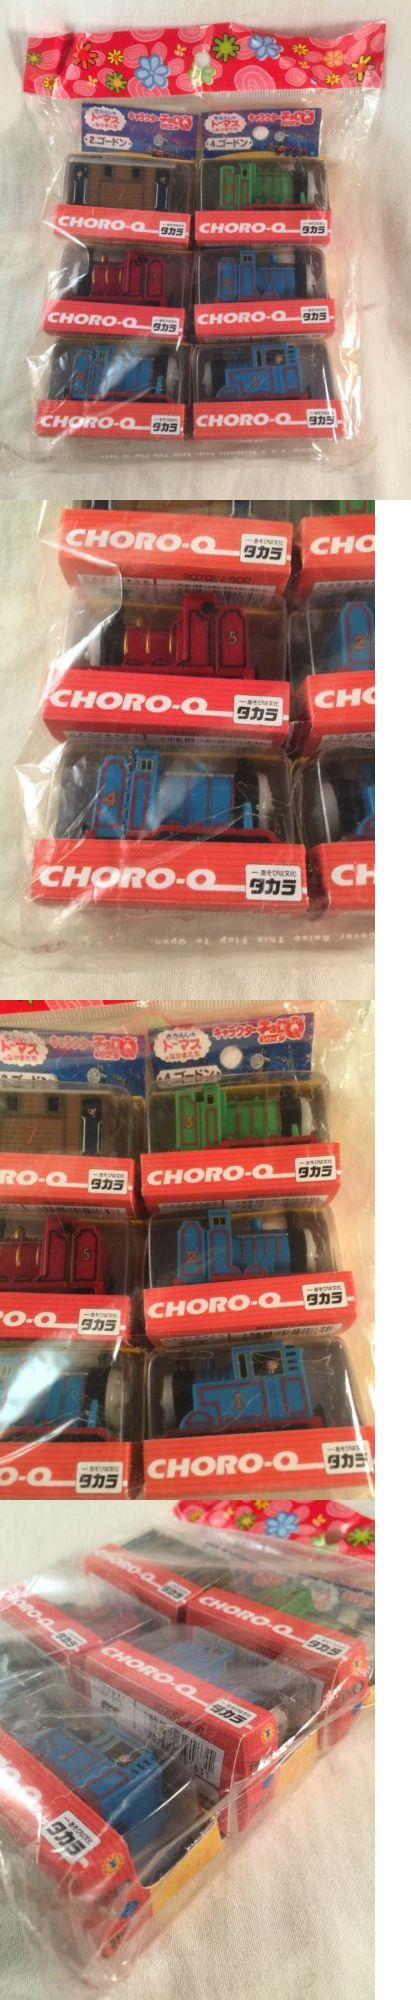 Games 146109: Vintage Takara Choro Q Thomas And Friends Pullback Set Of 6 New Package Us Seller -> BUY IT NOW ONLY: $39.95 on eBay!